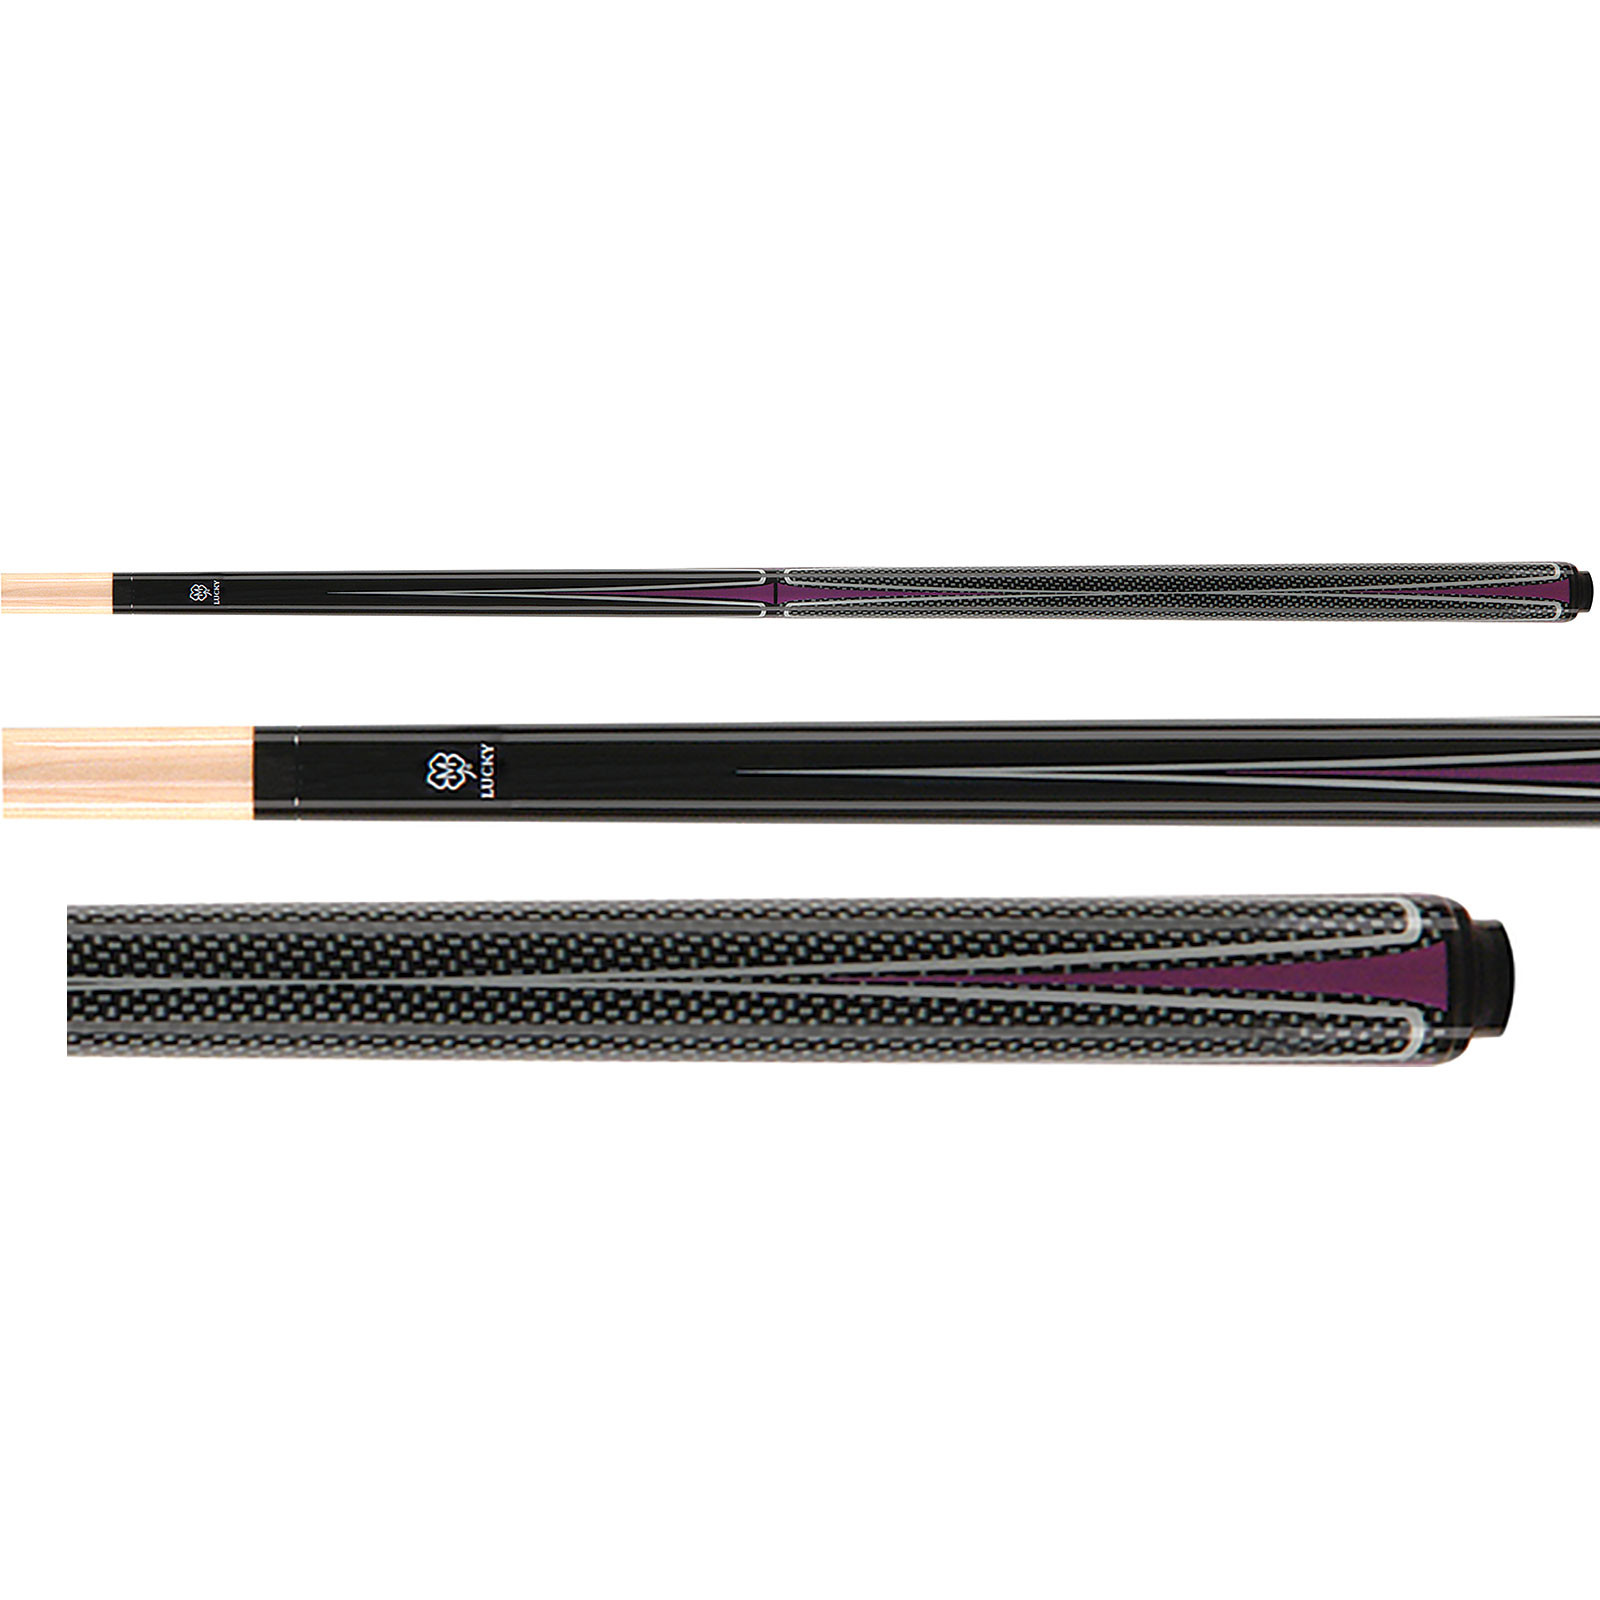 Mcdermott Lucky Pool Cue Stick L44 Purple